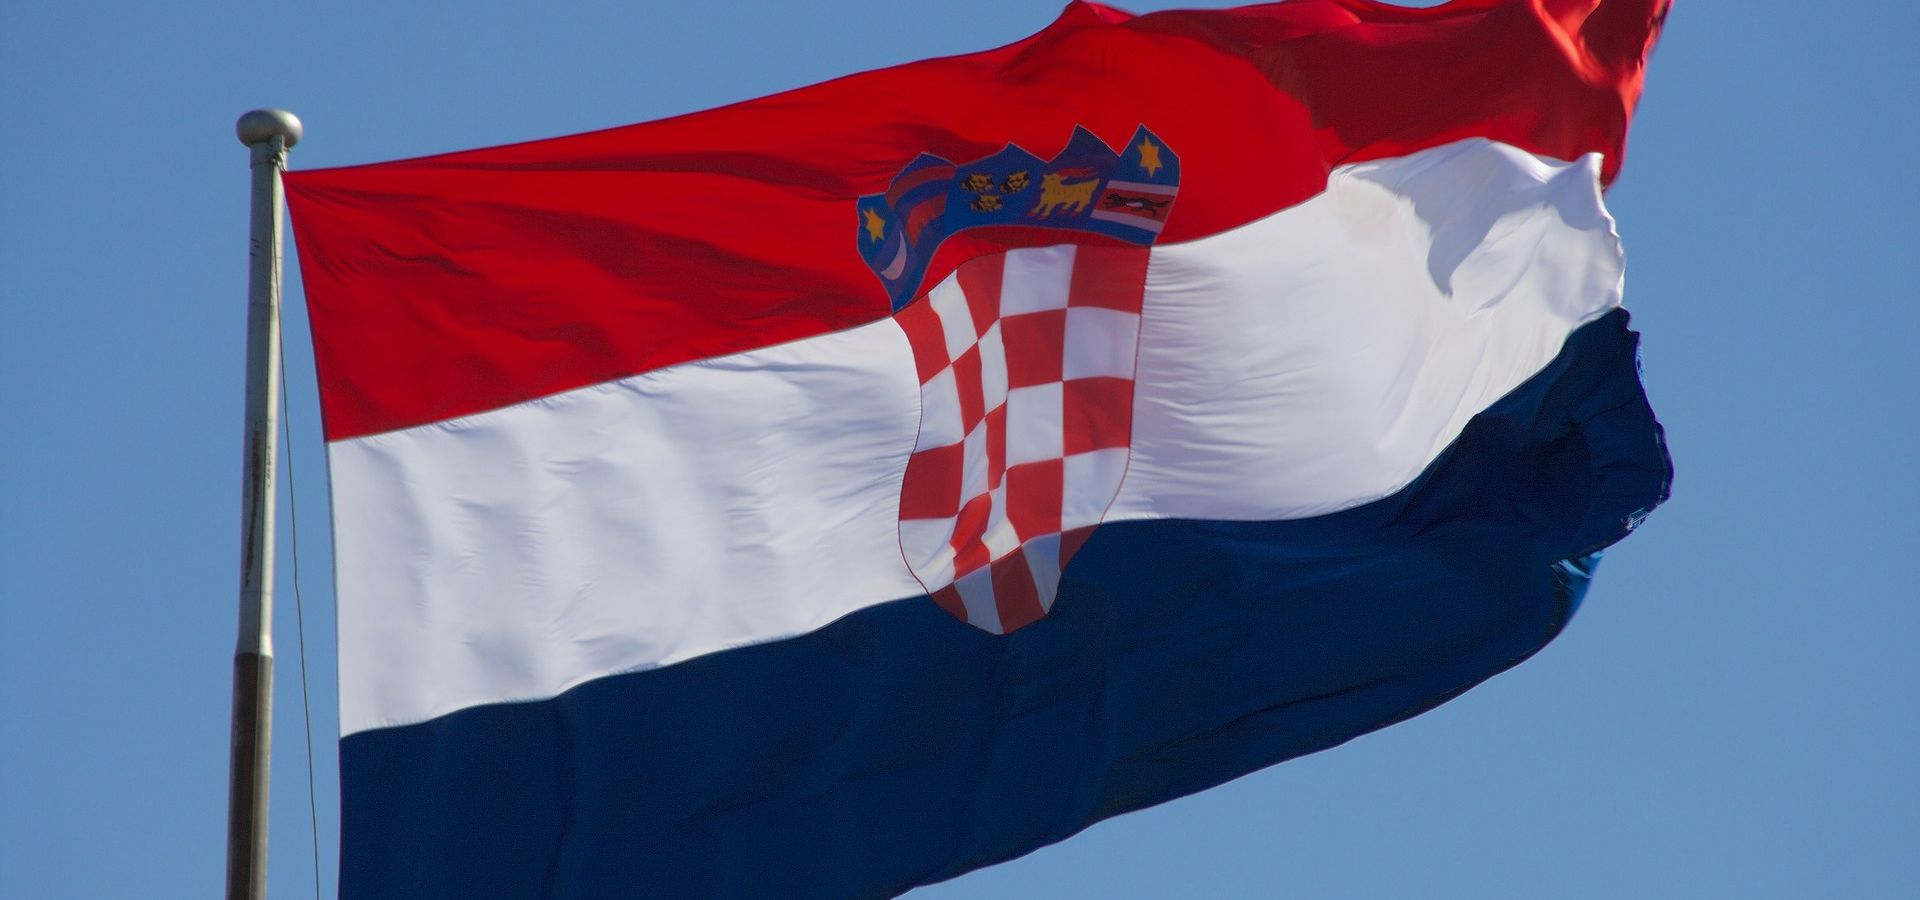 Finally investors have decided to build the Krk LNG terminal in Croatia, and argue that it will increase energy security in Central Europe and the Balkans.